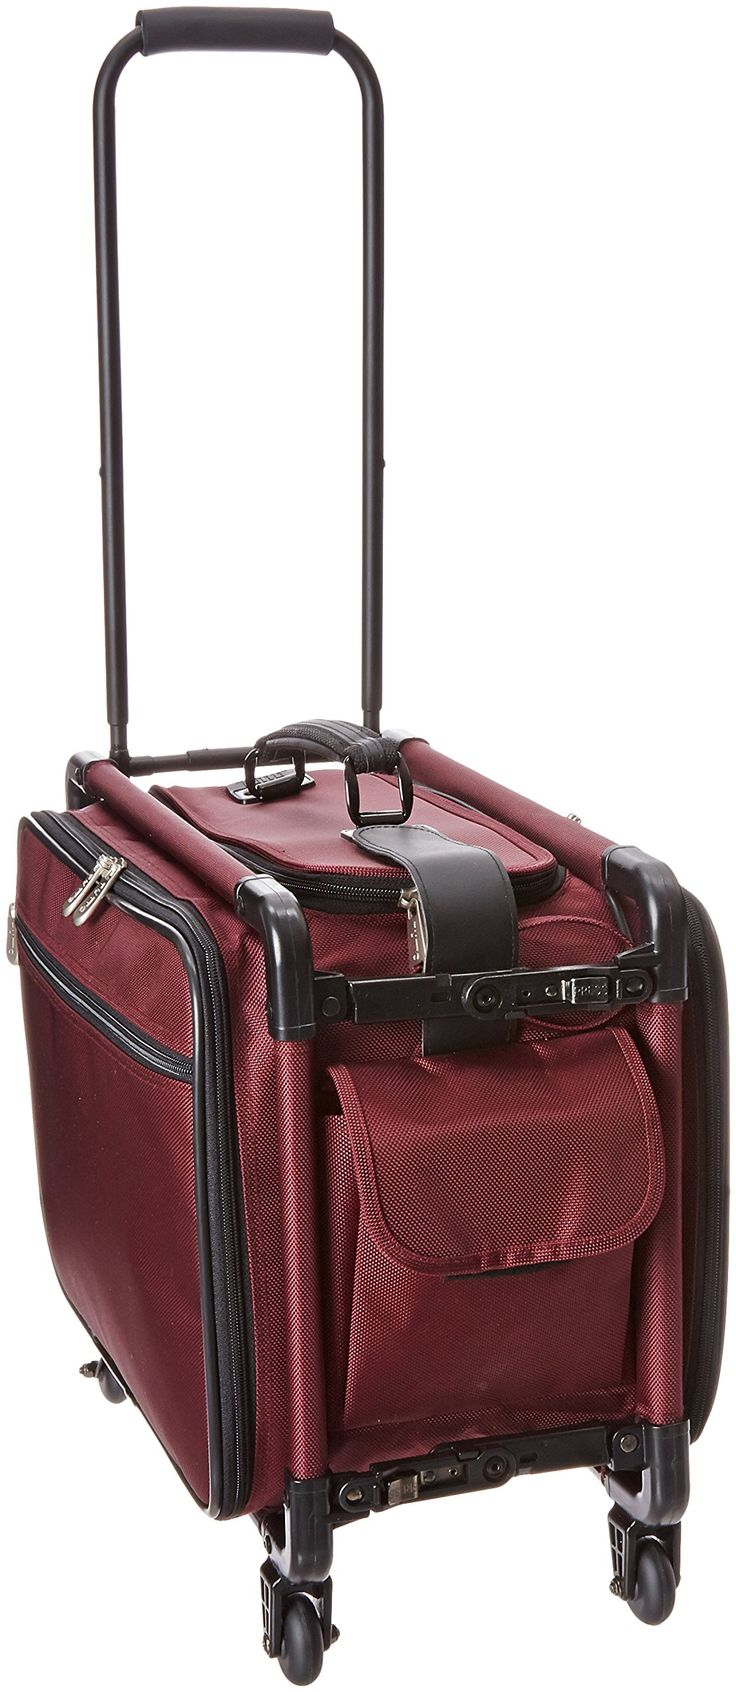 TUTTO 17 Inch Small Carry-On Luggage, Burgundy, One Size